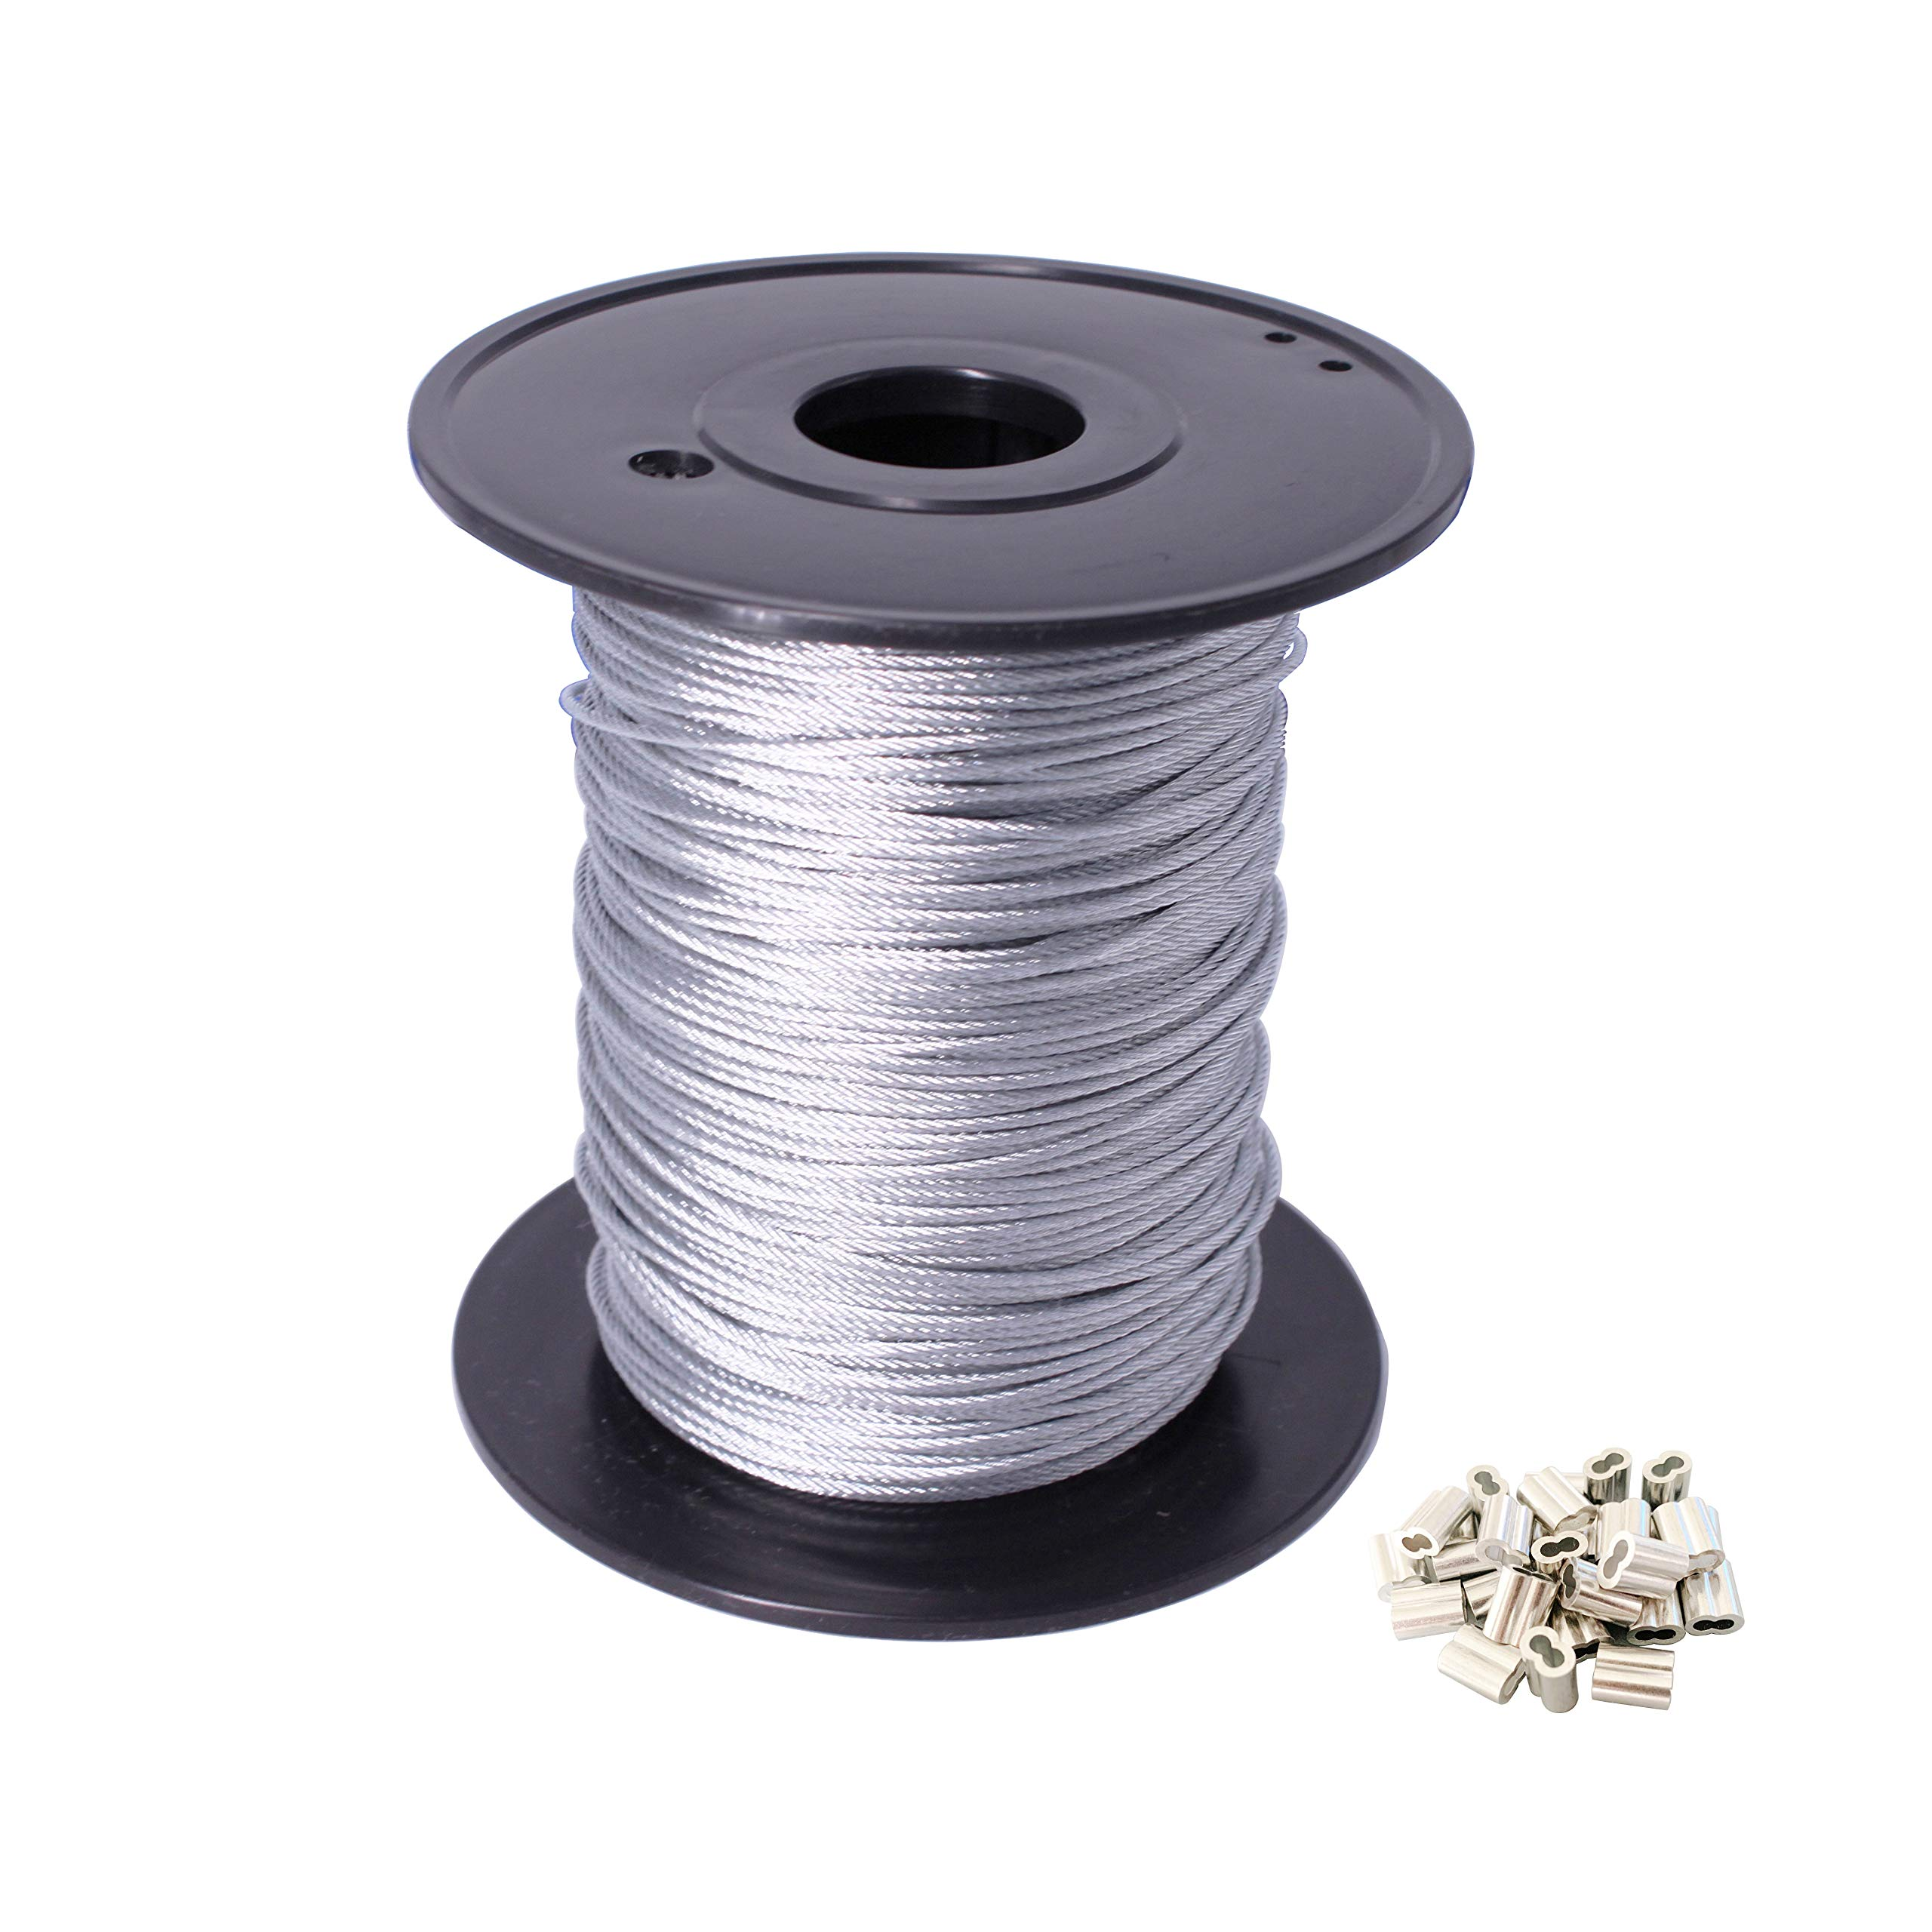 Bryne Galvanized 328' Length,Steel Wire Rope 1/16'' Steel Cable and 30 Pieces Aluminum Crimping Loop Sleeves, 7x7 Strand Core, 480 lbs Breaking Strength